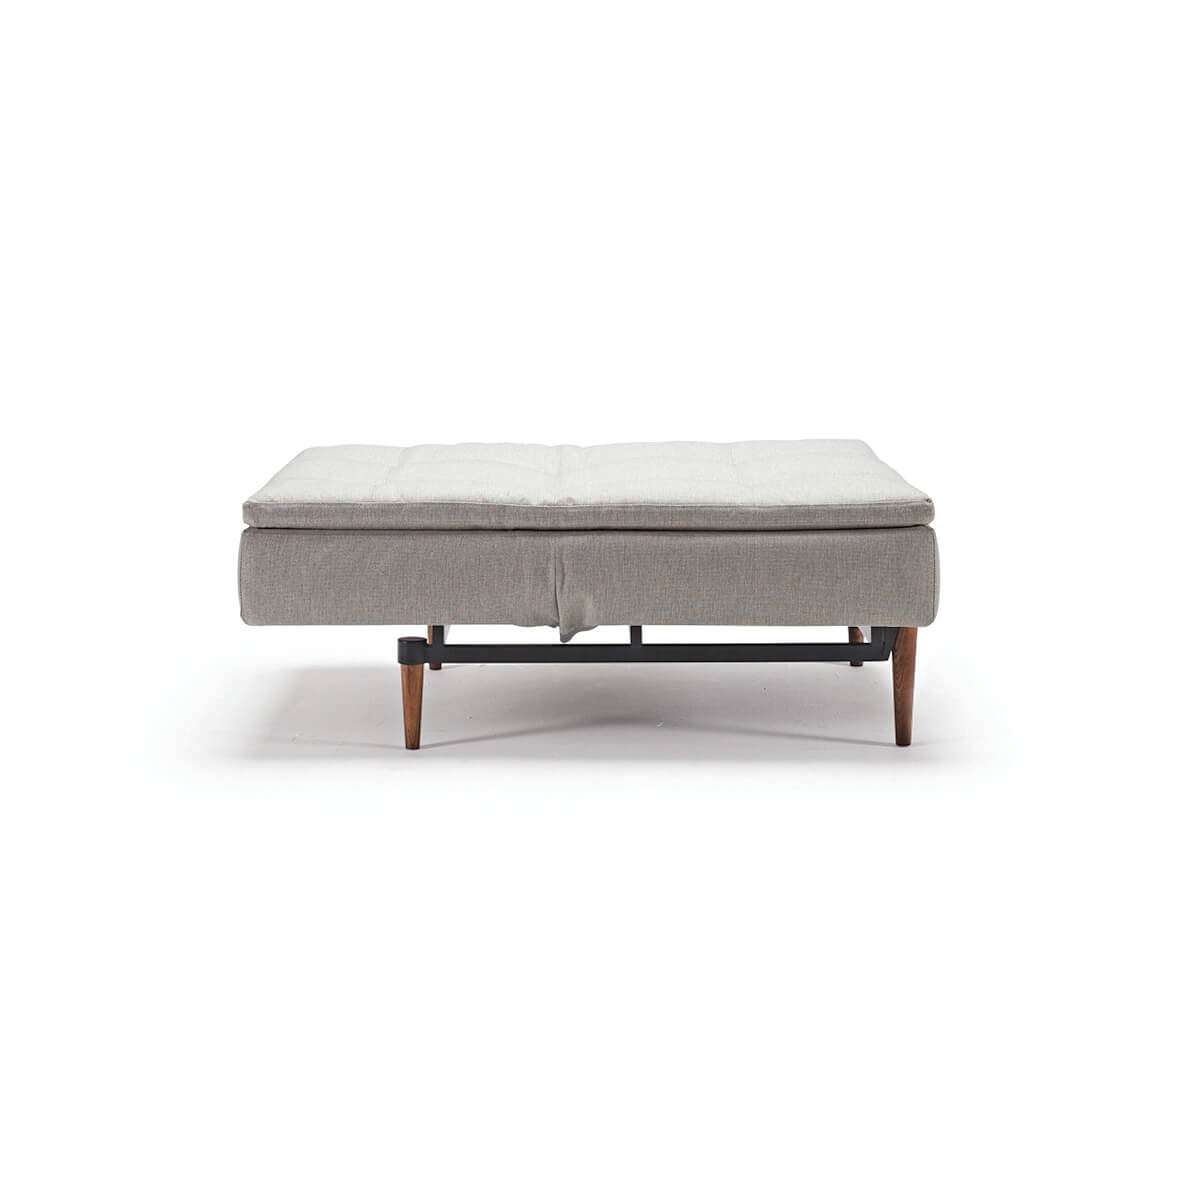 Futon convertible sofa unfolded side view